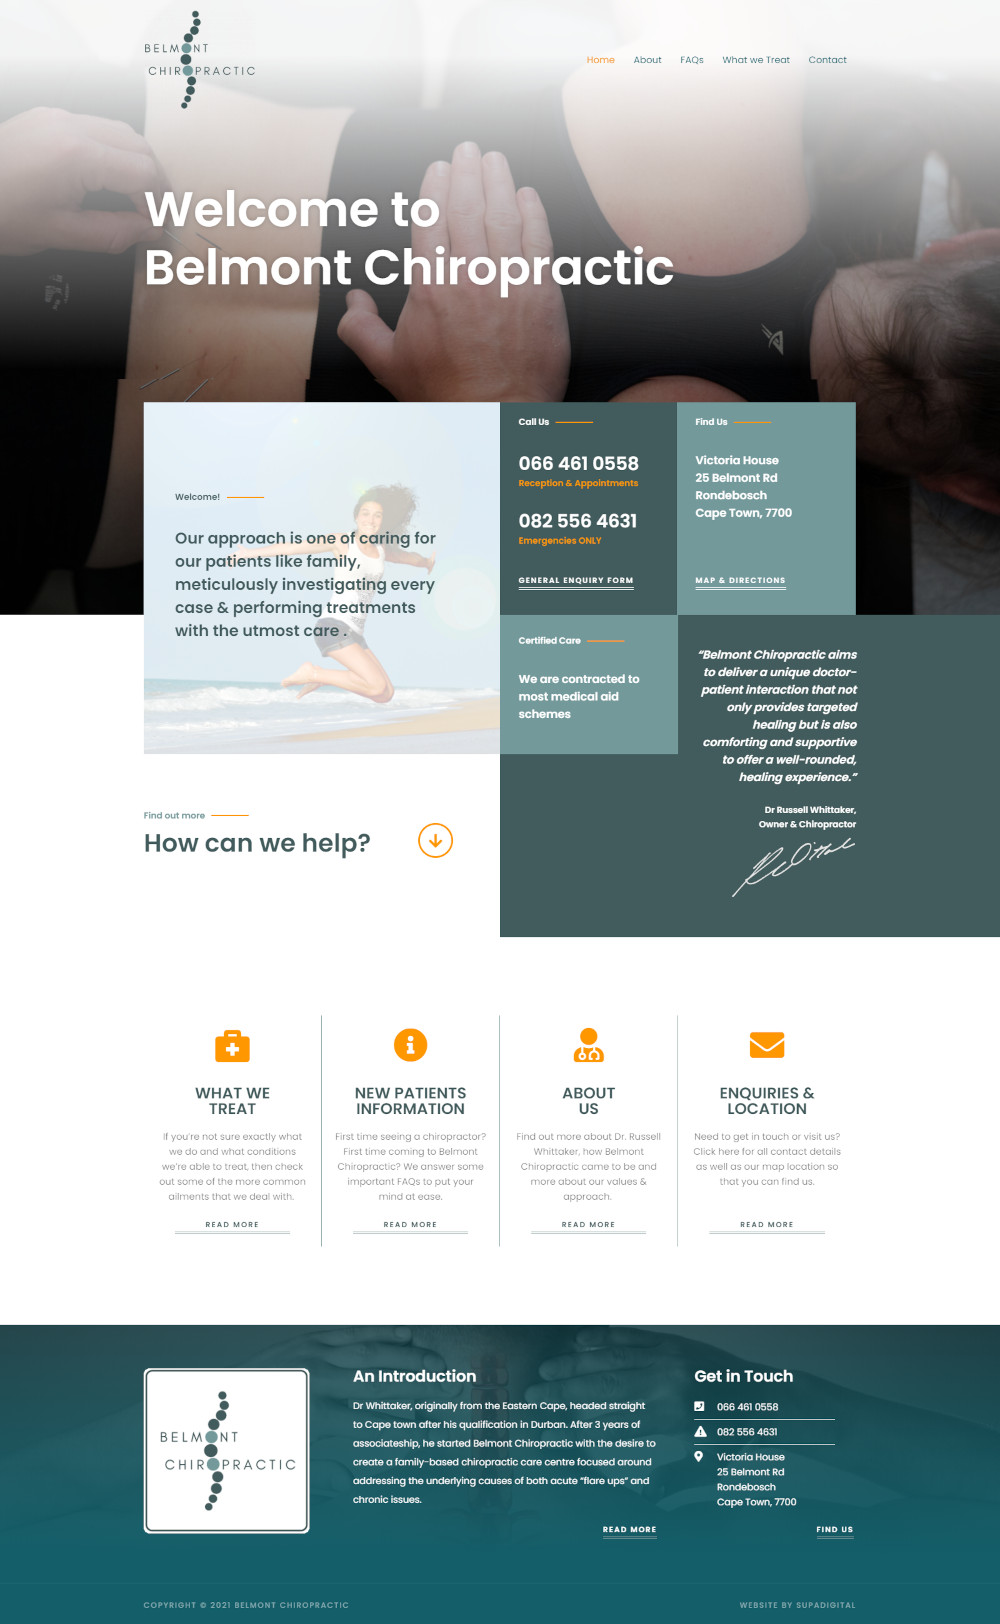 Website for Belmont Chiropractic in Cape Town